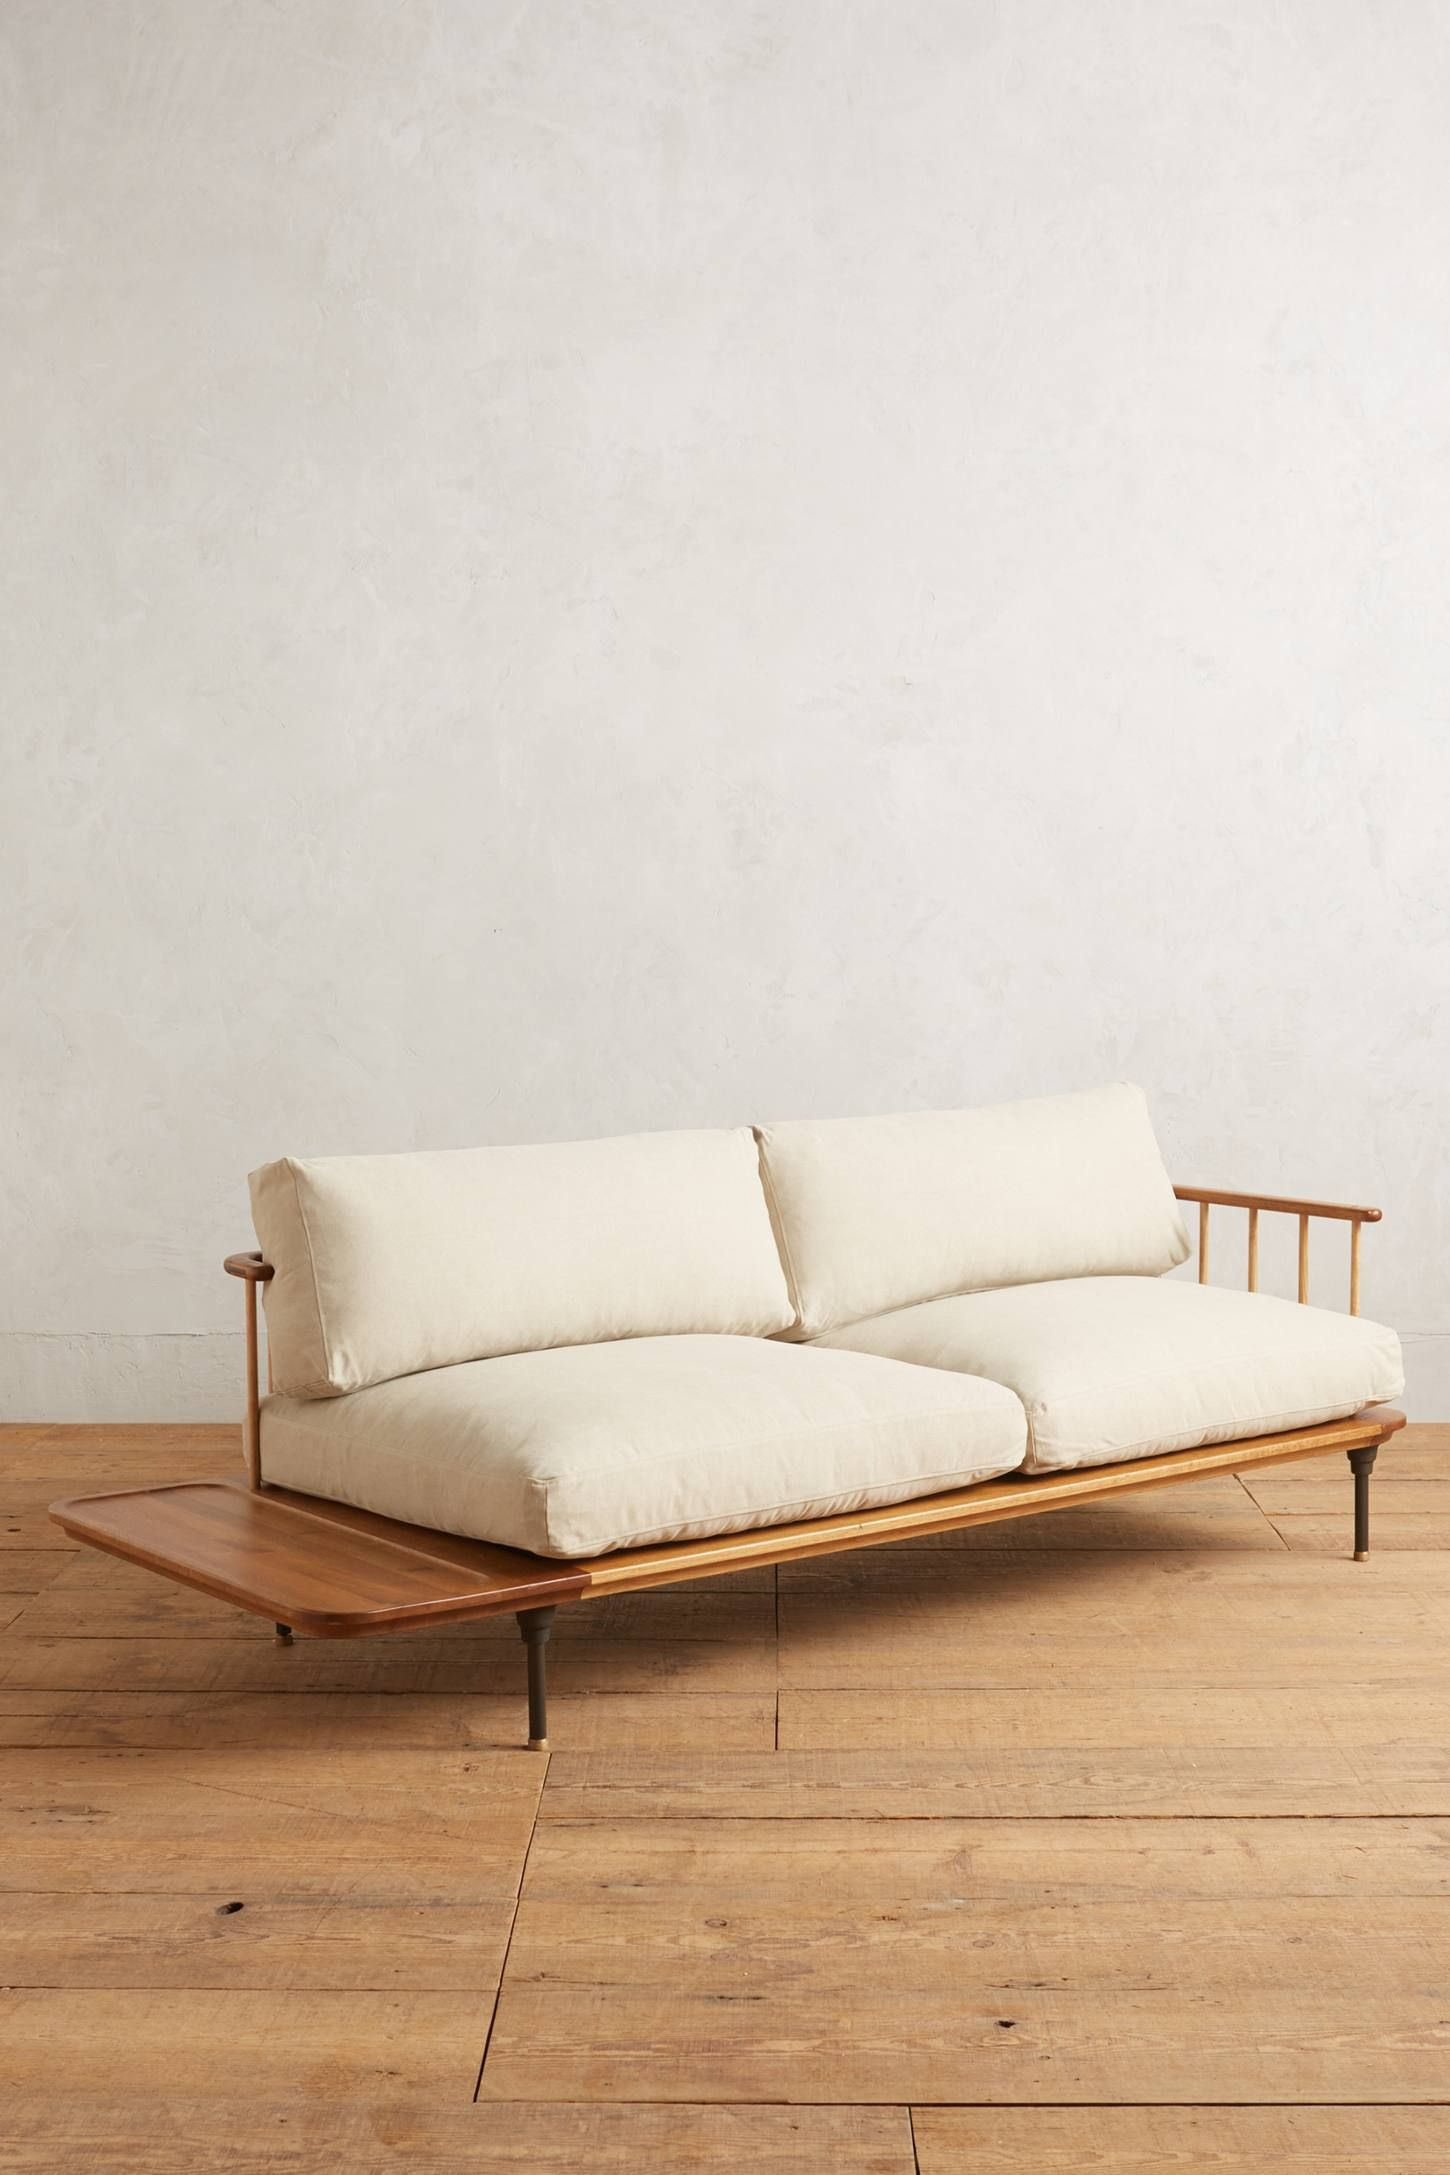 Elegant Shop The Kalmar Sofa And More Anthropologie At Anthropologie Today. Read  Customer Reviews, Discover Product Details And More.